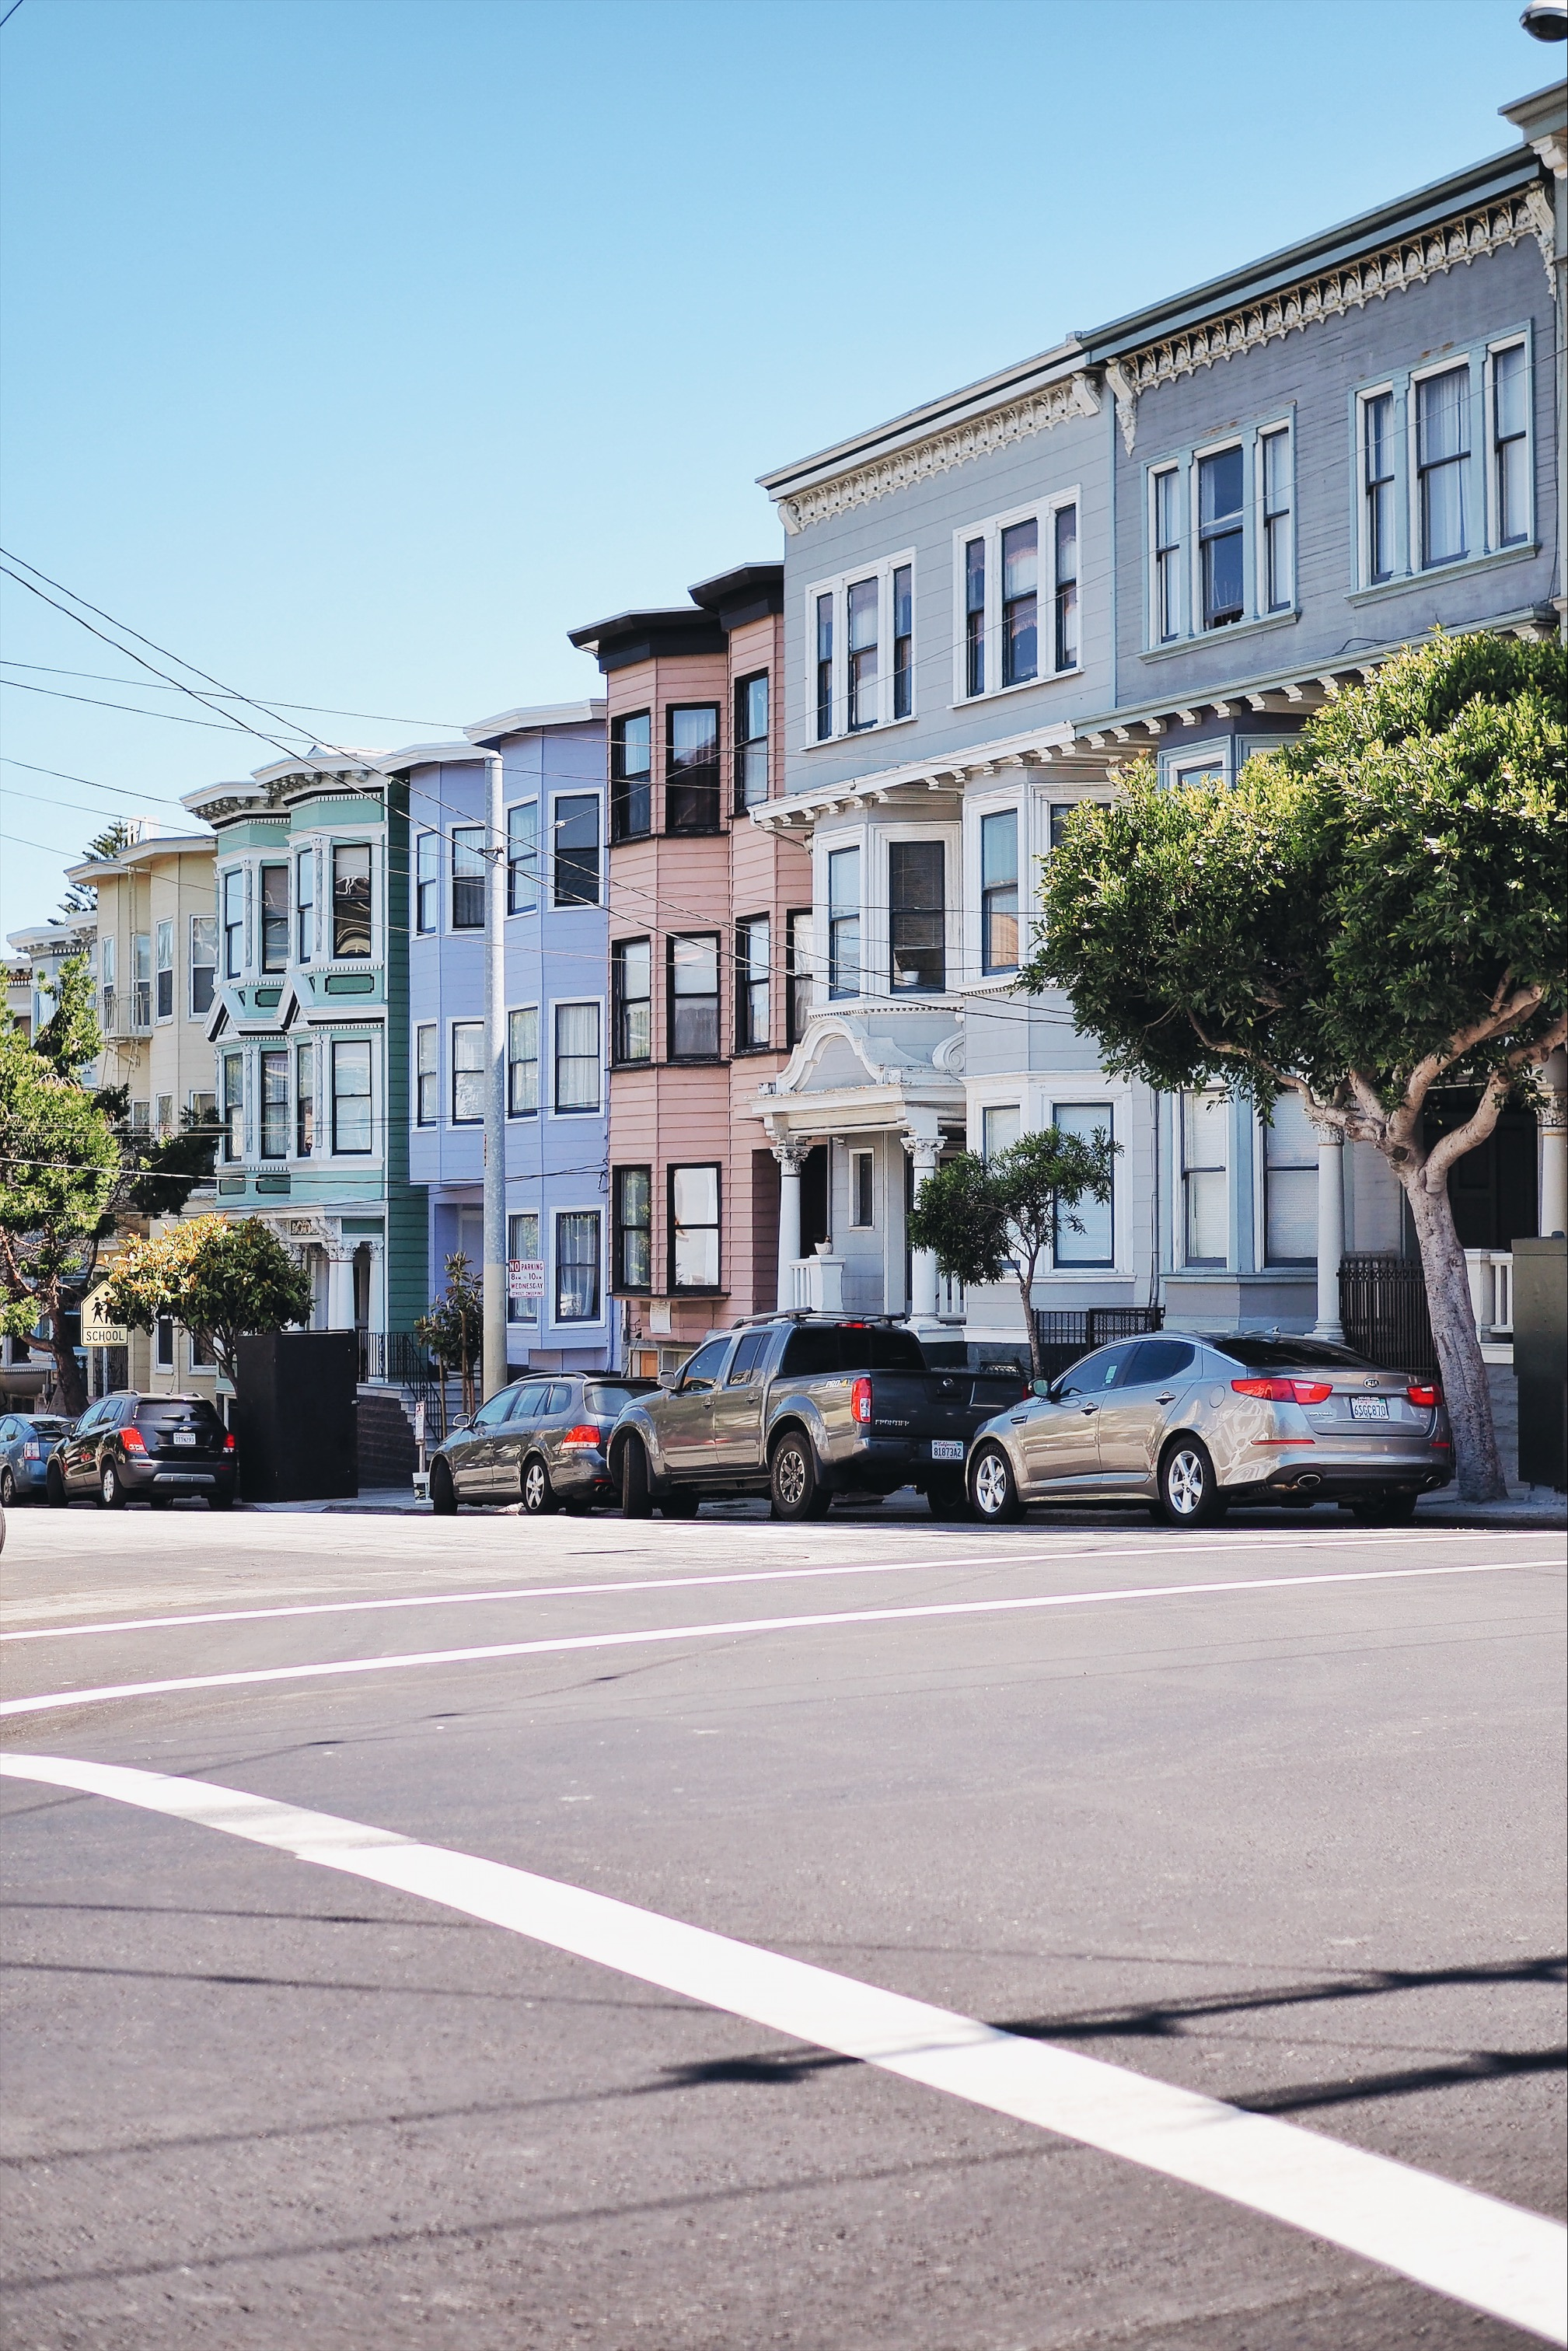 San Francisco, Haight Ashbury, Wild SF Tours